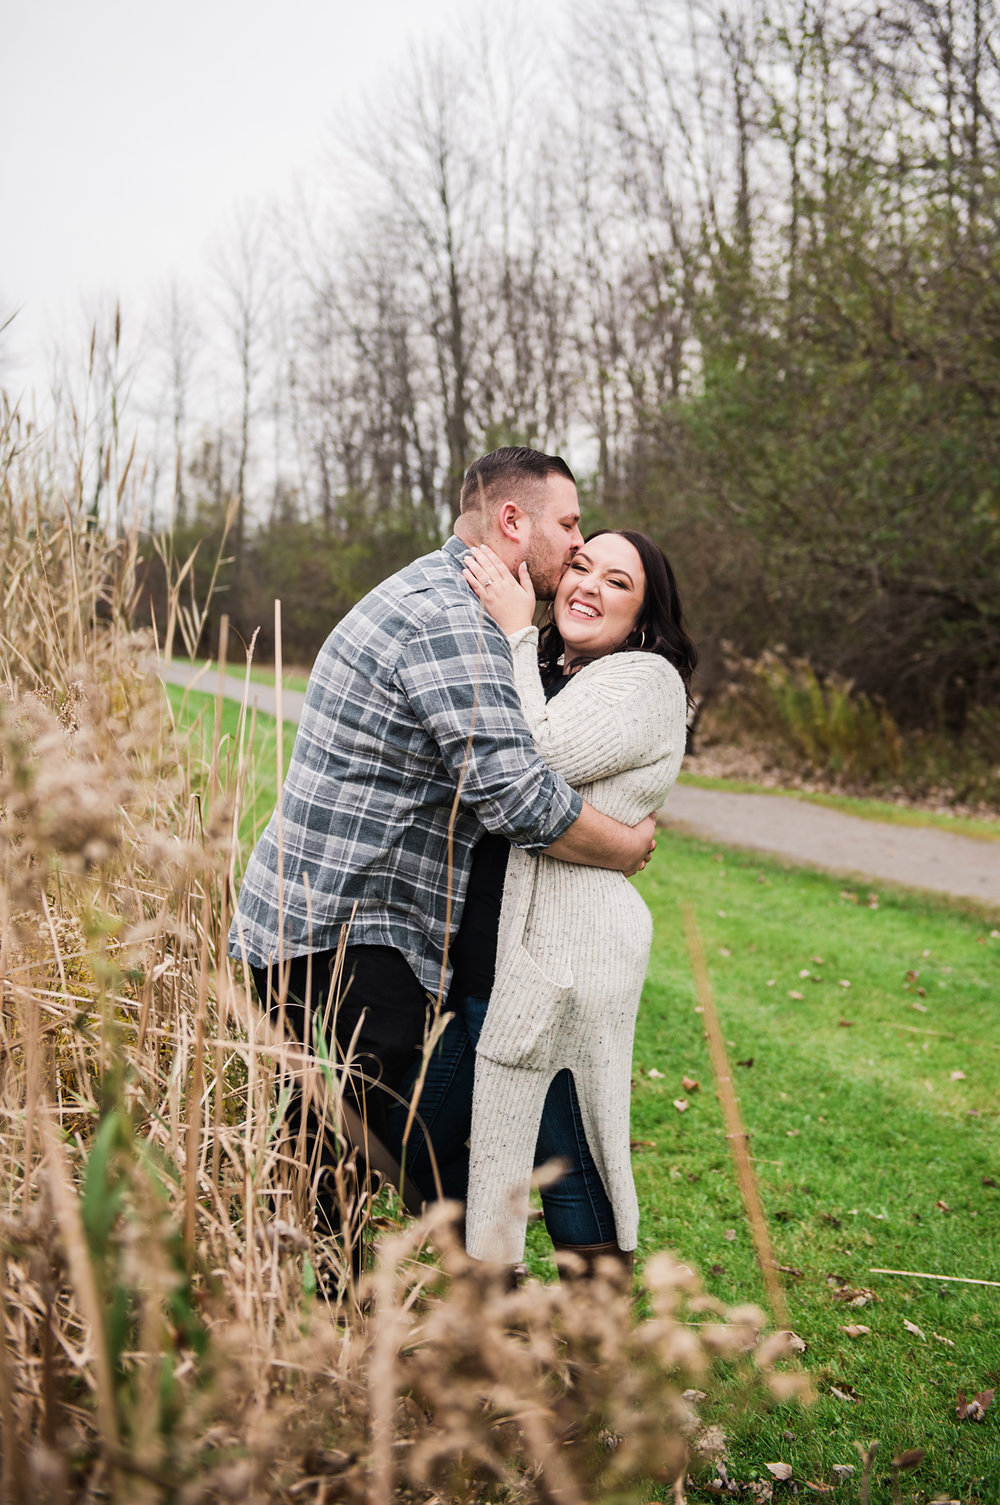 Tinker_Nature_Park_Rochester_Engagement_Session_JILL_STUDIO_Rochester_NY_Photographer_DSC_0501.jpg